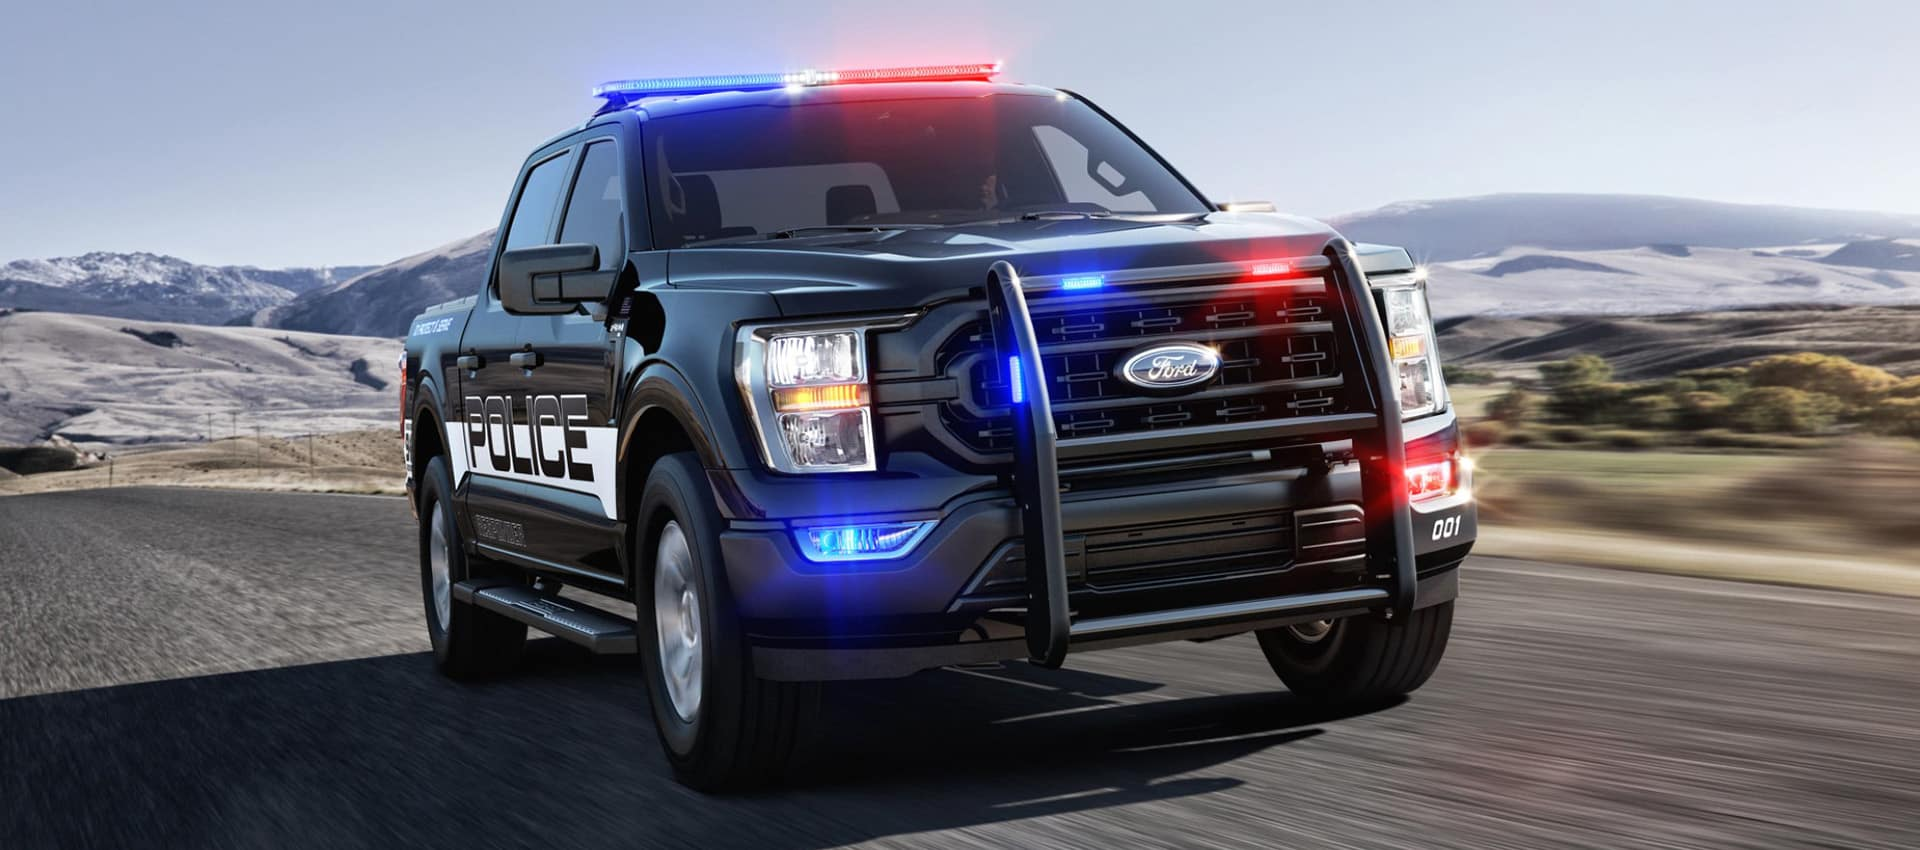 2021 Ford F-150 Police Responder in St. Louis